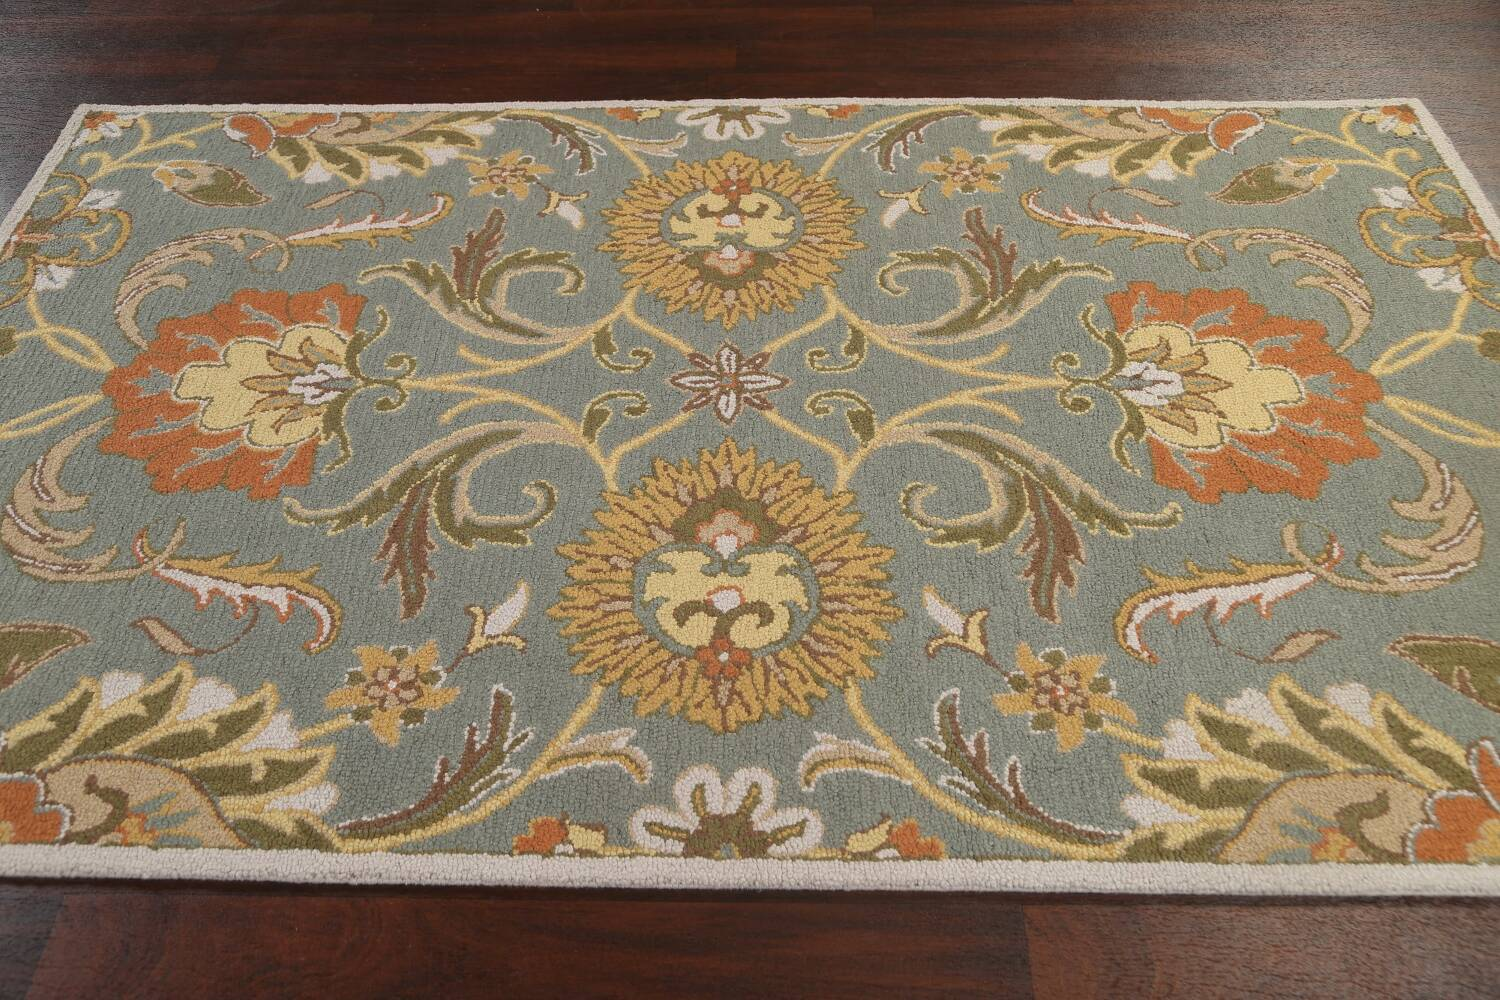 Hand-Tufted Floral Agra Area Rug 5x8 image 12